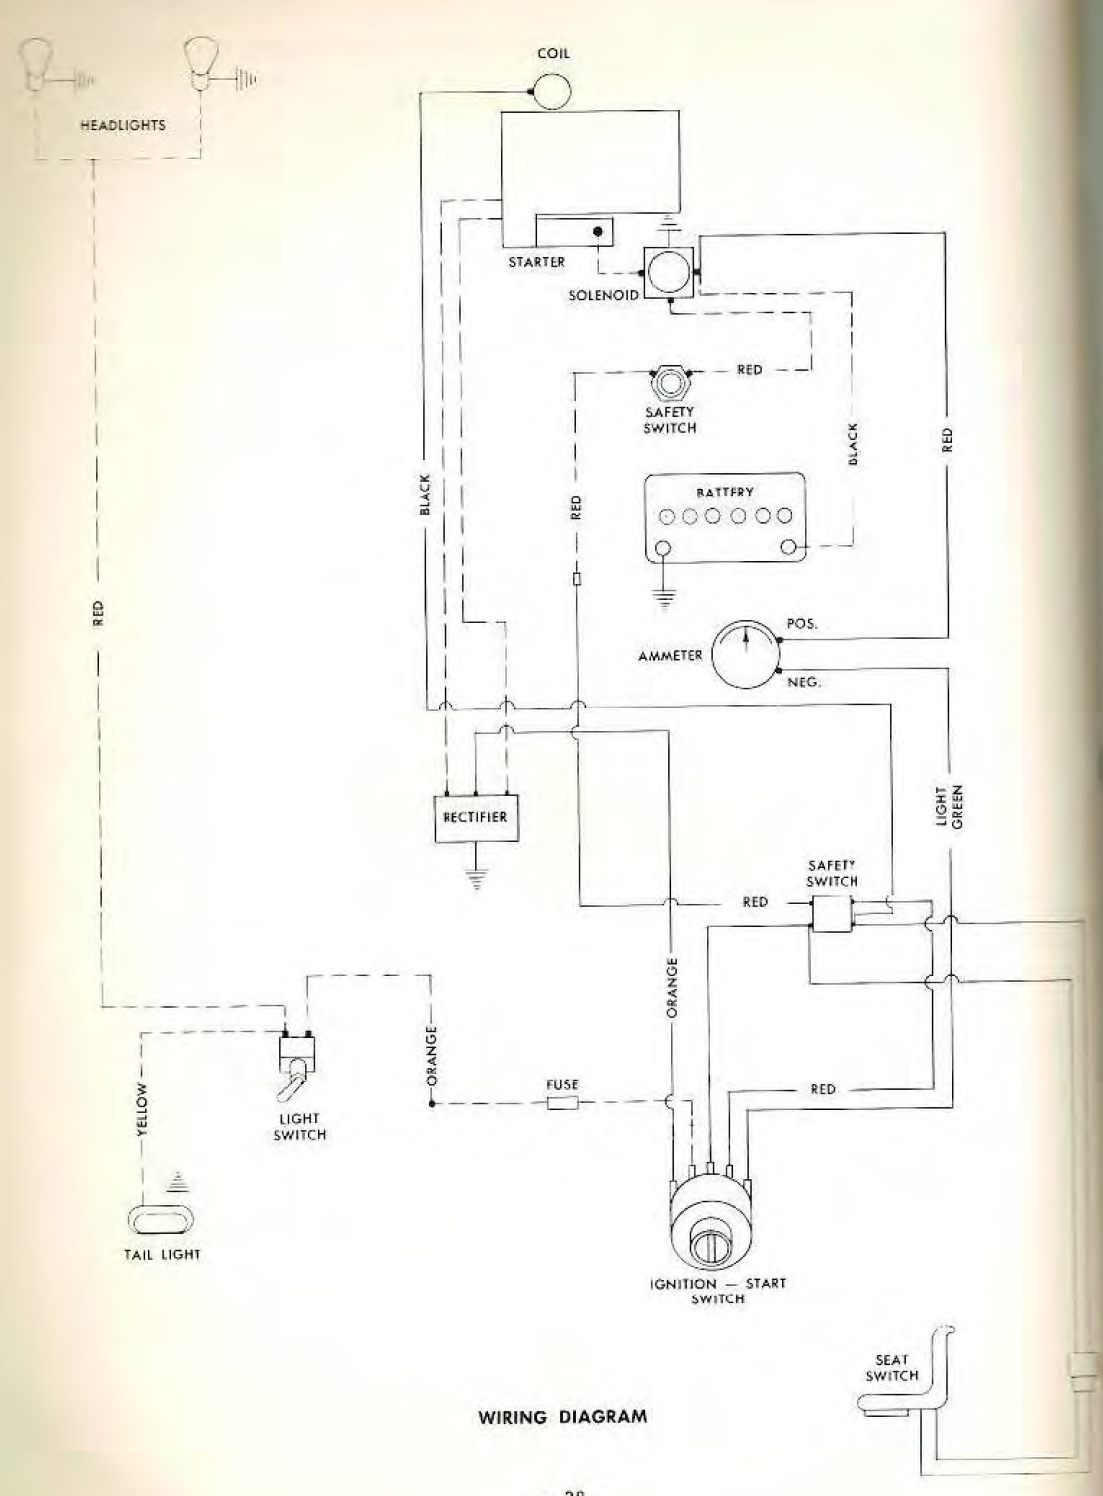 C100 Wiring Diagram Detailed In Addition House Electrical Diagrams Wheel Horse Redsquare Residential